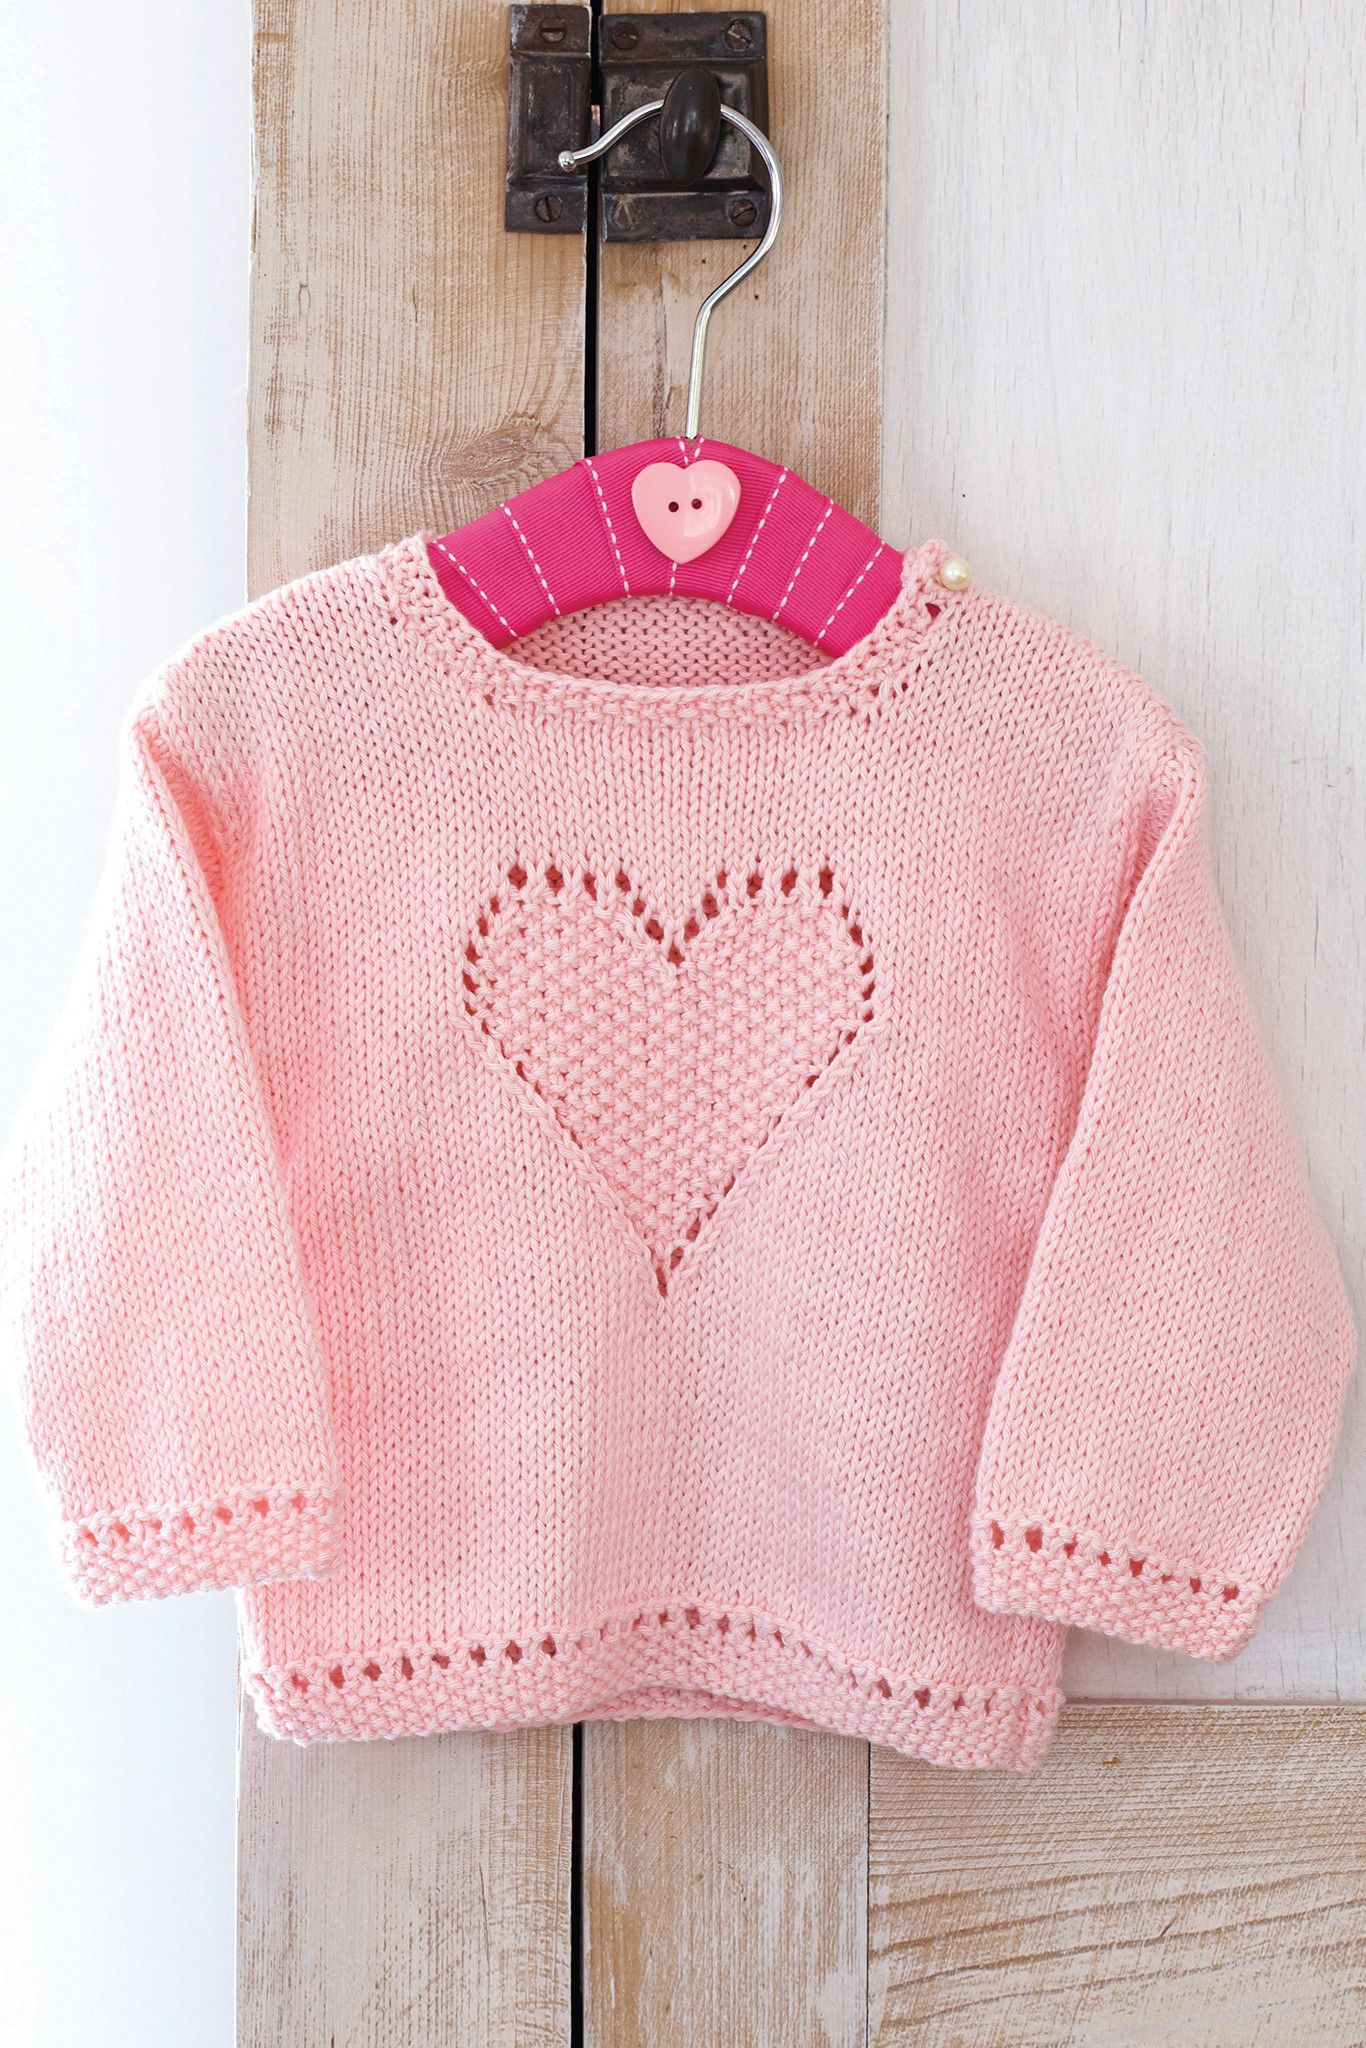 47a6950c38139 Knitted pink sweater for little girls with heart design on front ...